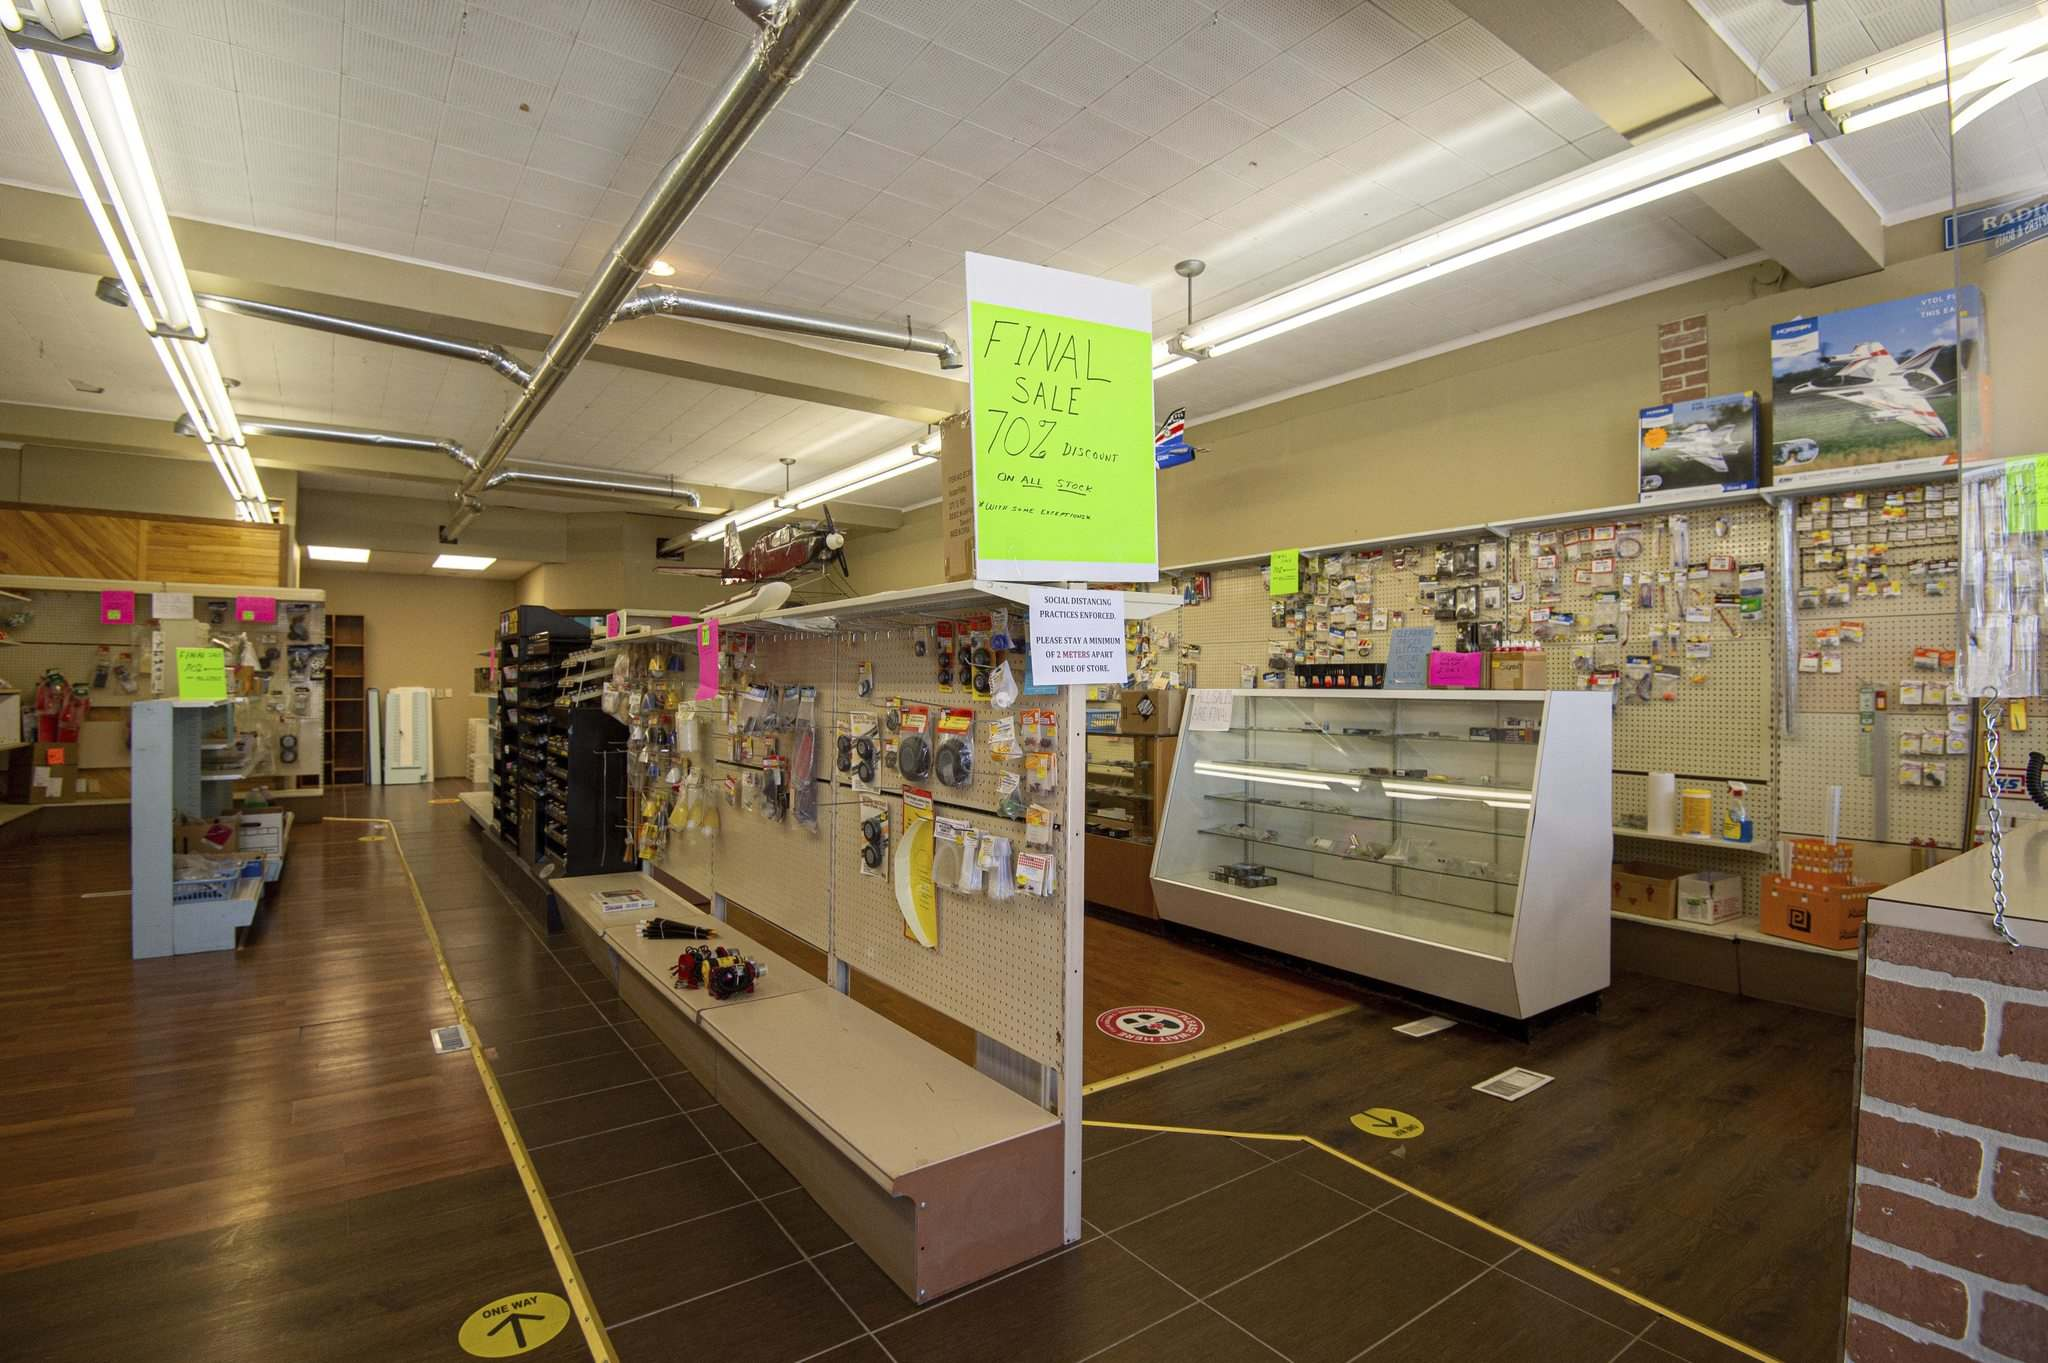 MIKE SUDOMA / WINNIPEG FREE PRESS</p><p>Customers have been flocking to Cellar Dweller to get their modelling supplies before the hobby shop's closing day.</p>